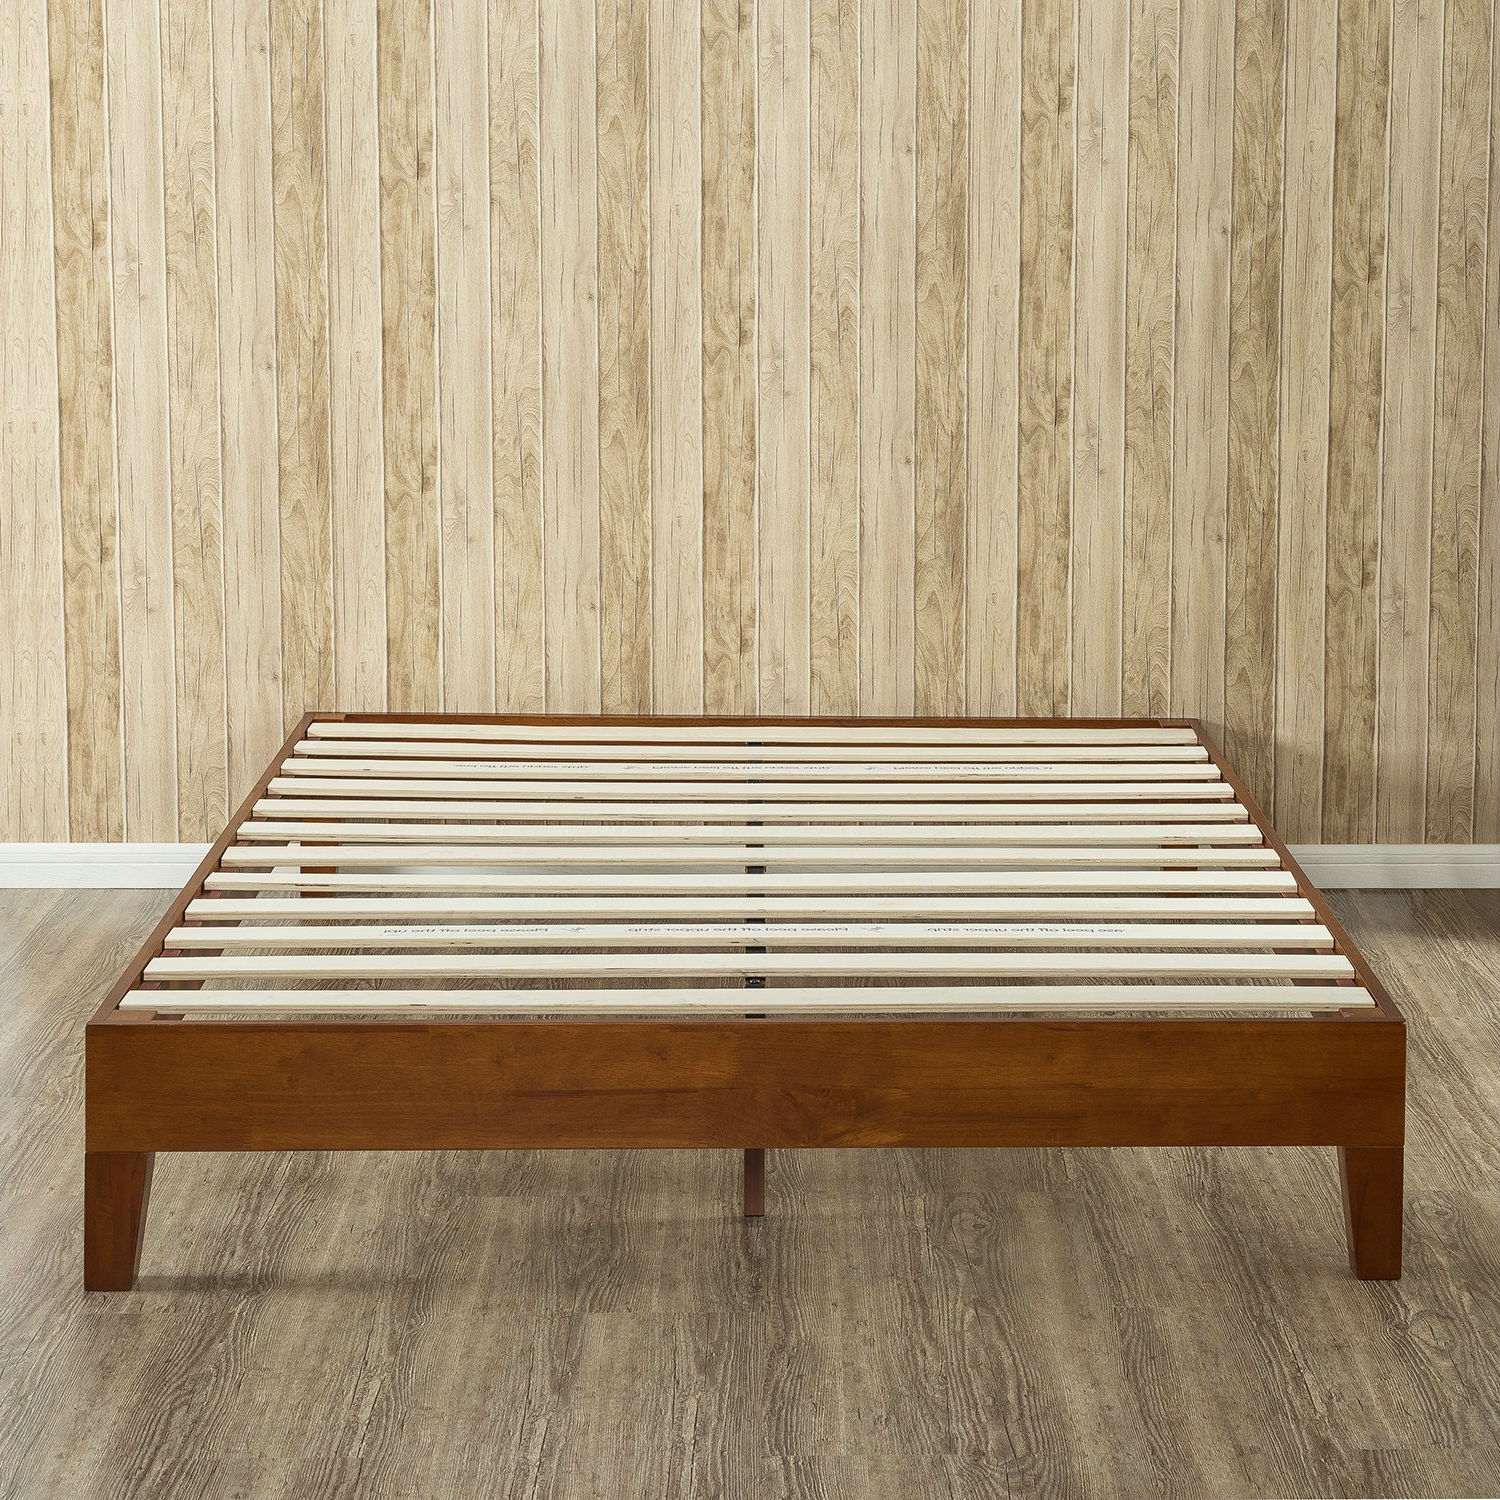 king size modern low profile solid wood platform bed frame in cherry finish. king size modern low profile solid wood platform bed frame in